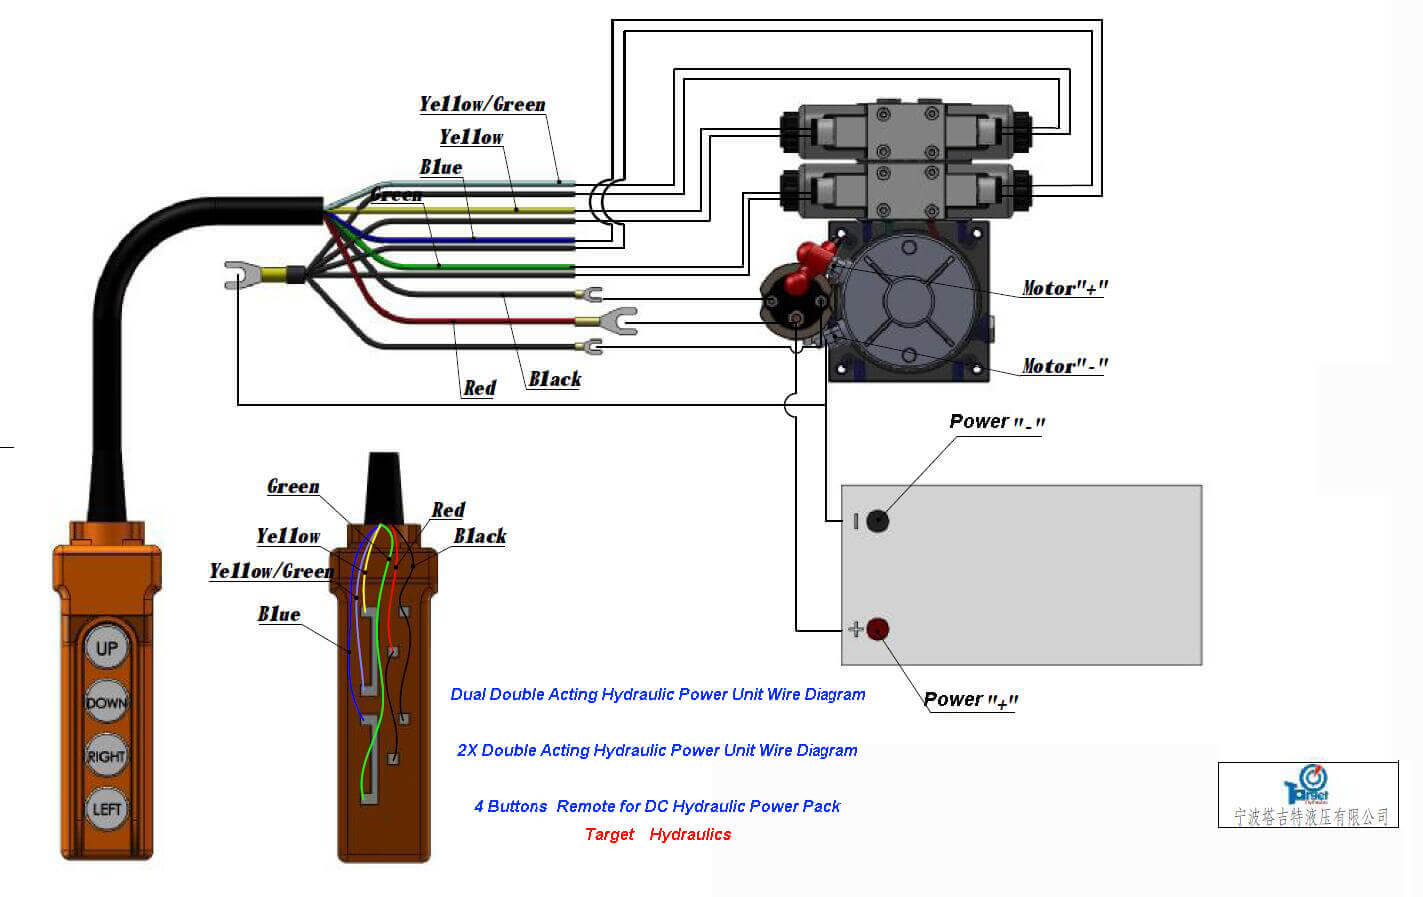 dual double acting hydraulic cylinder Power Units Wiring Diagram drawing how to wire hydraulic power pack,power unit diagram design 4 wire dc motor connection diagram at bakdesigns.co